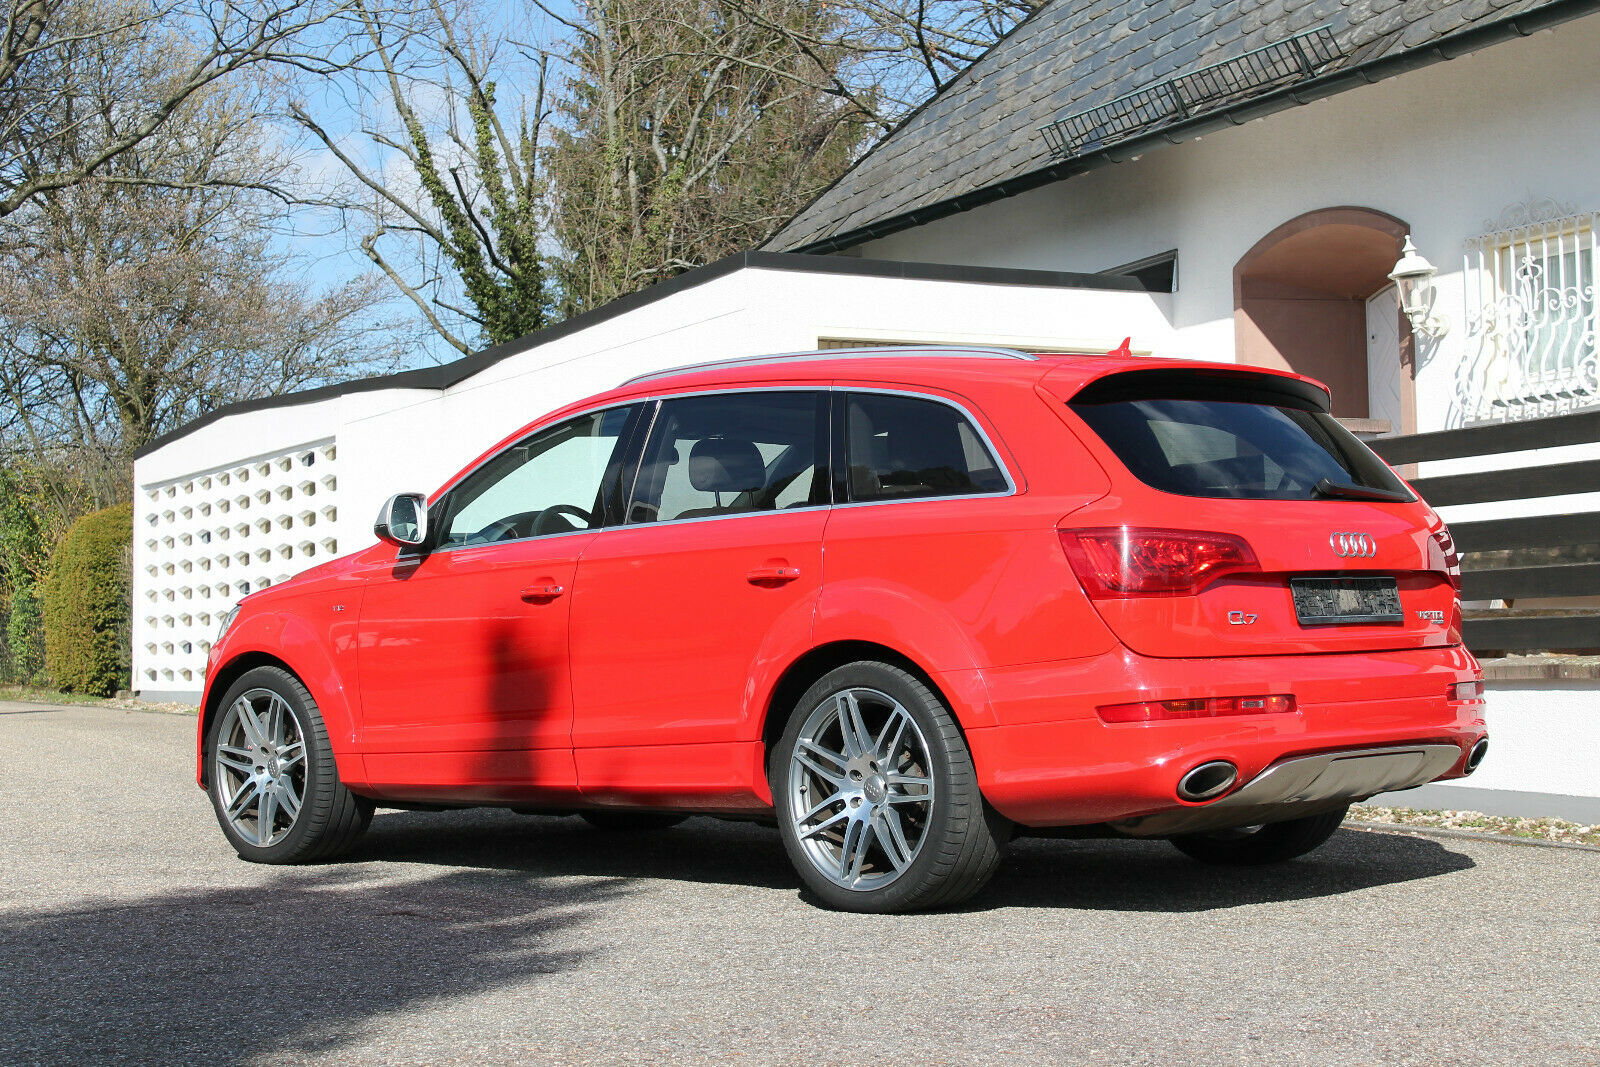 Audi Q7 V12 TDI performances